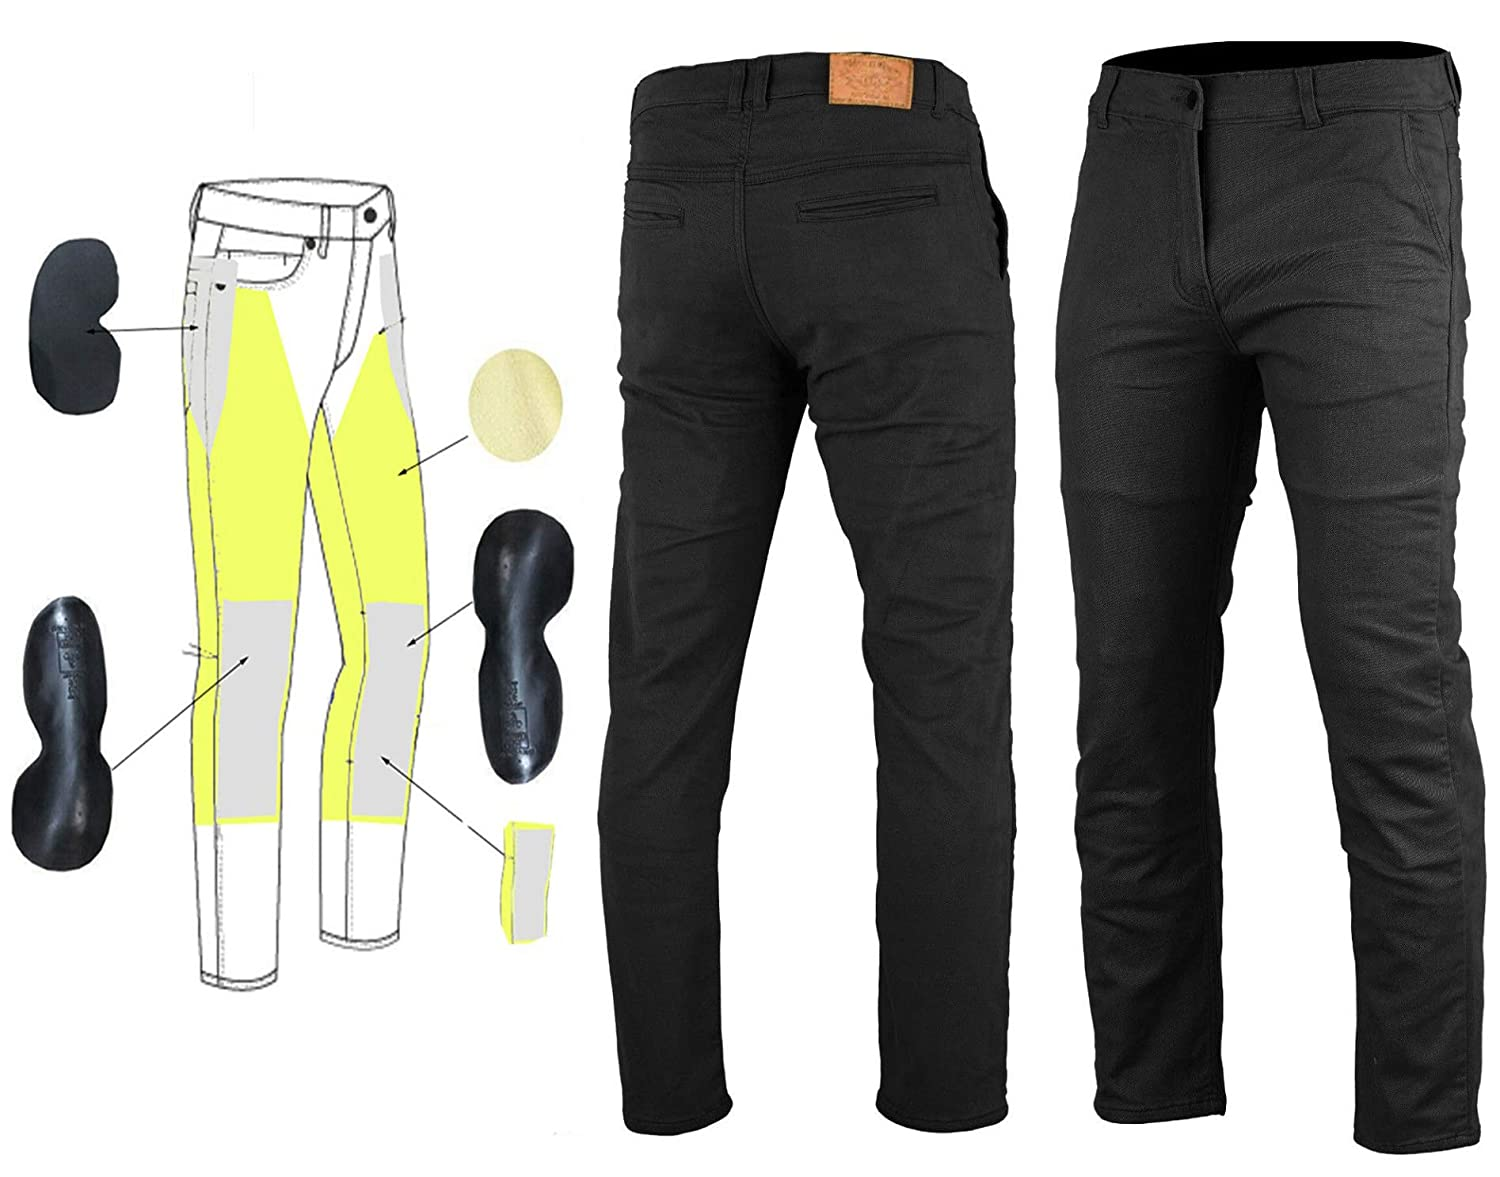 Bikers Gear Australia New Modern Chino Style Kevlar Lined Protective Motorcycle Jeans with CE 1621-1 Protection 42R Black